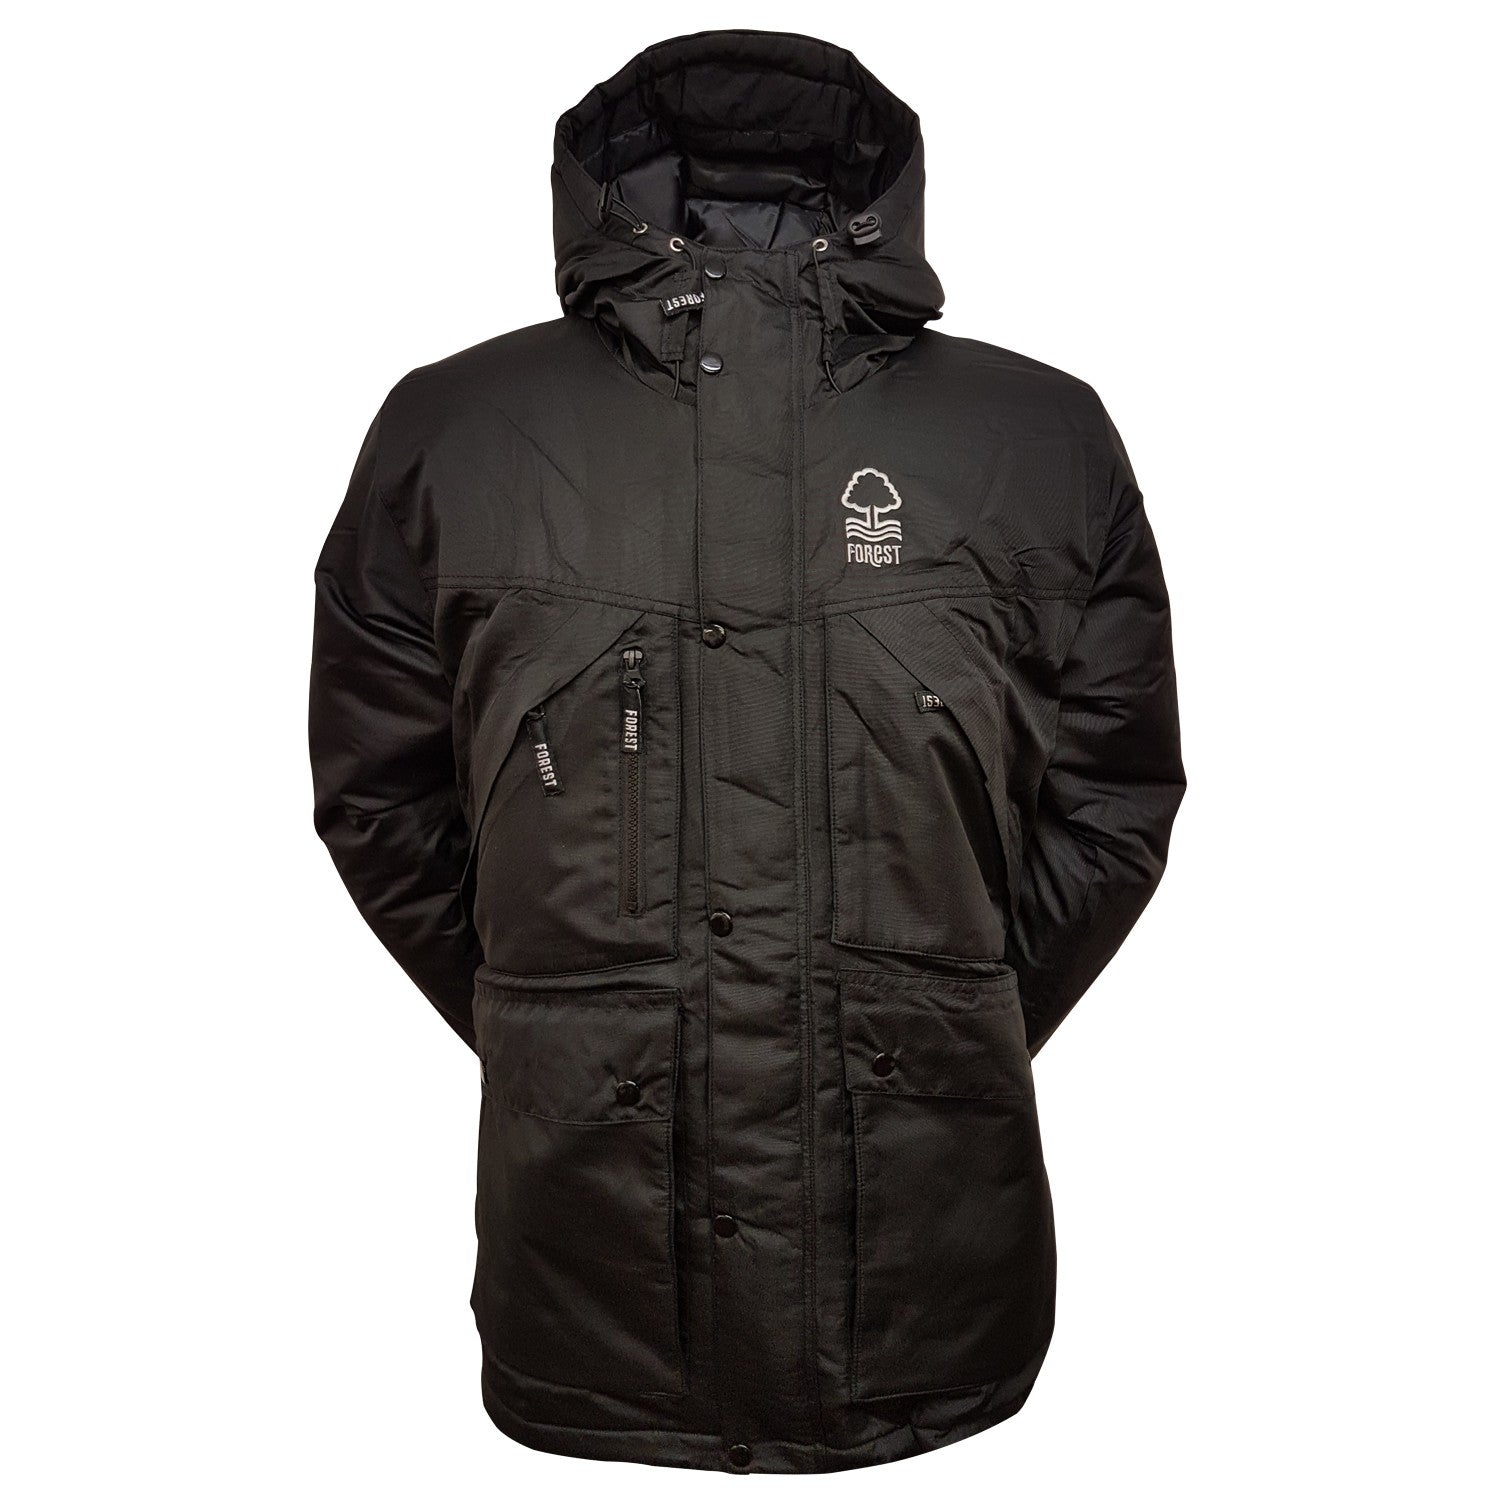 NFFC Junior Black Parka Jacket - Nottingham Forest